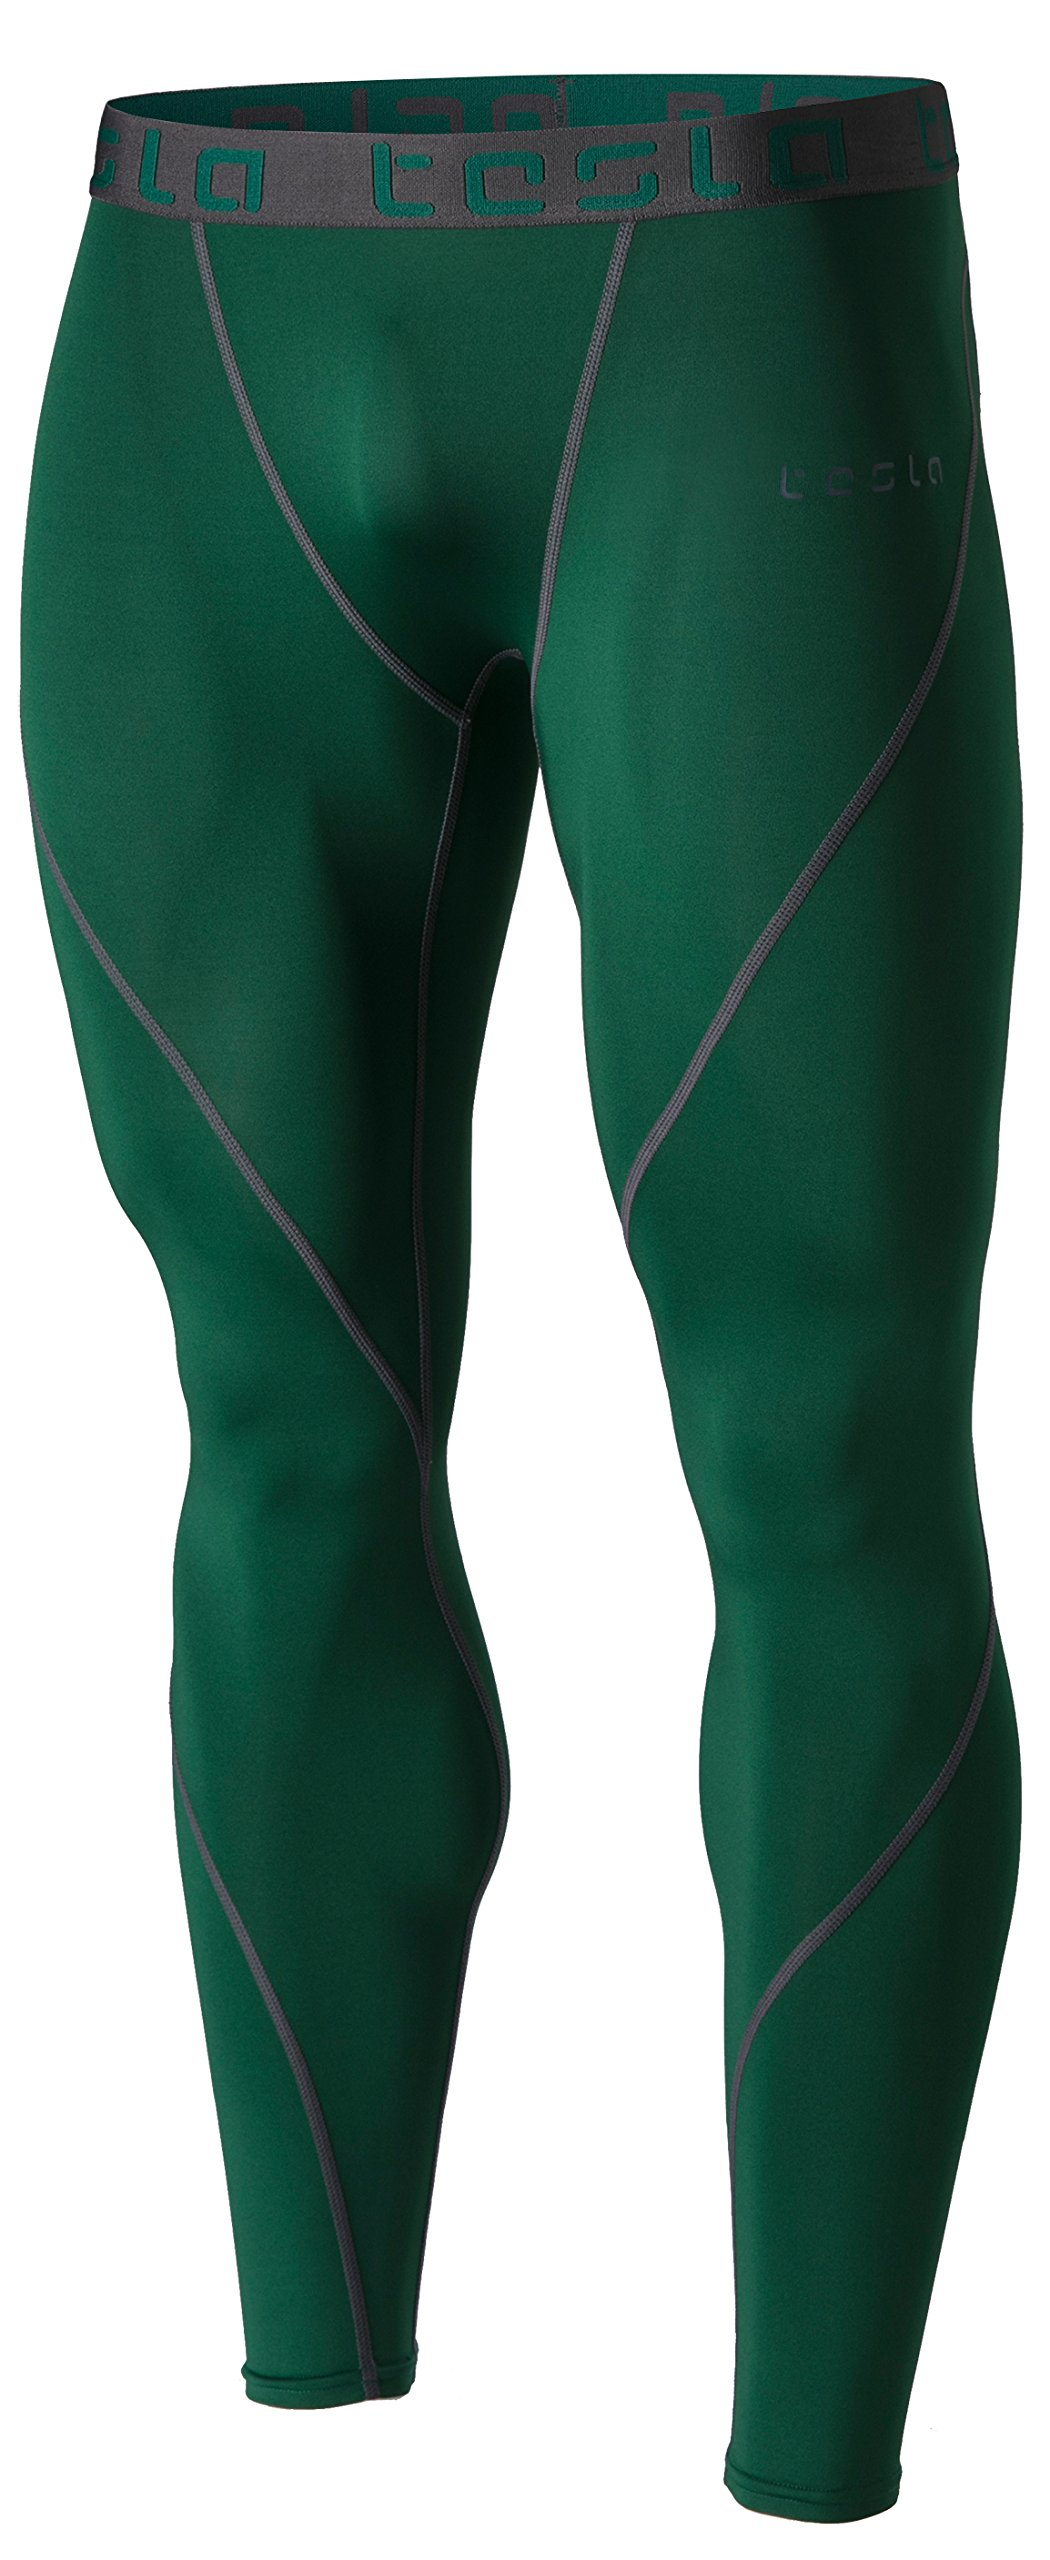 TSLA Men's (Pack of 1) Compression Pants Running